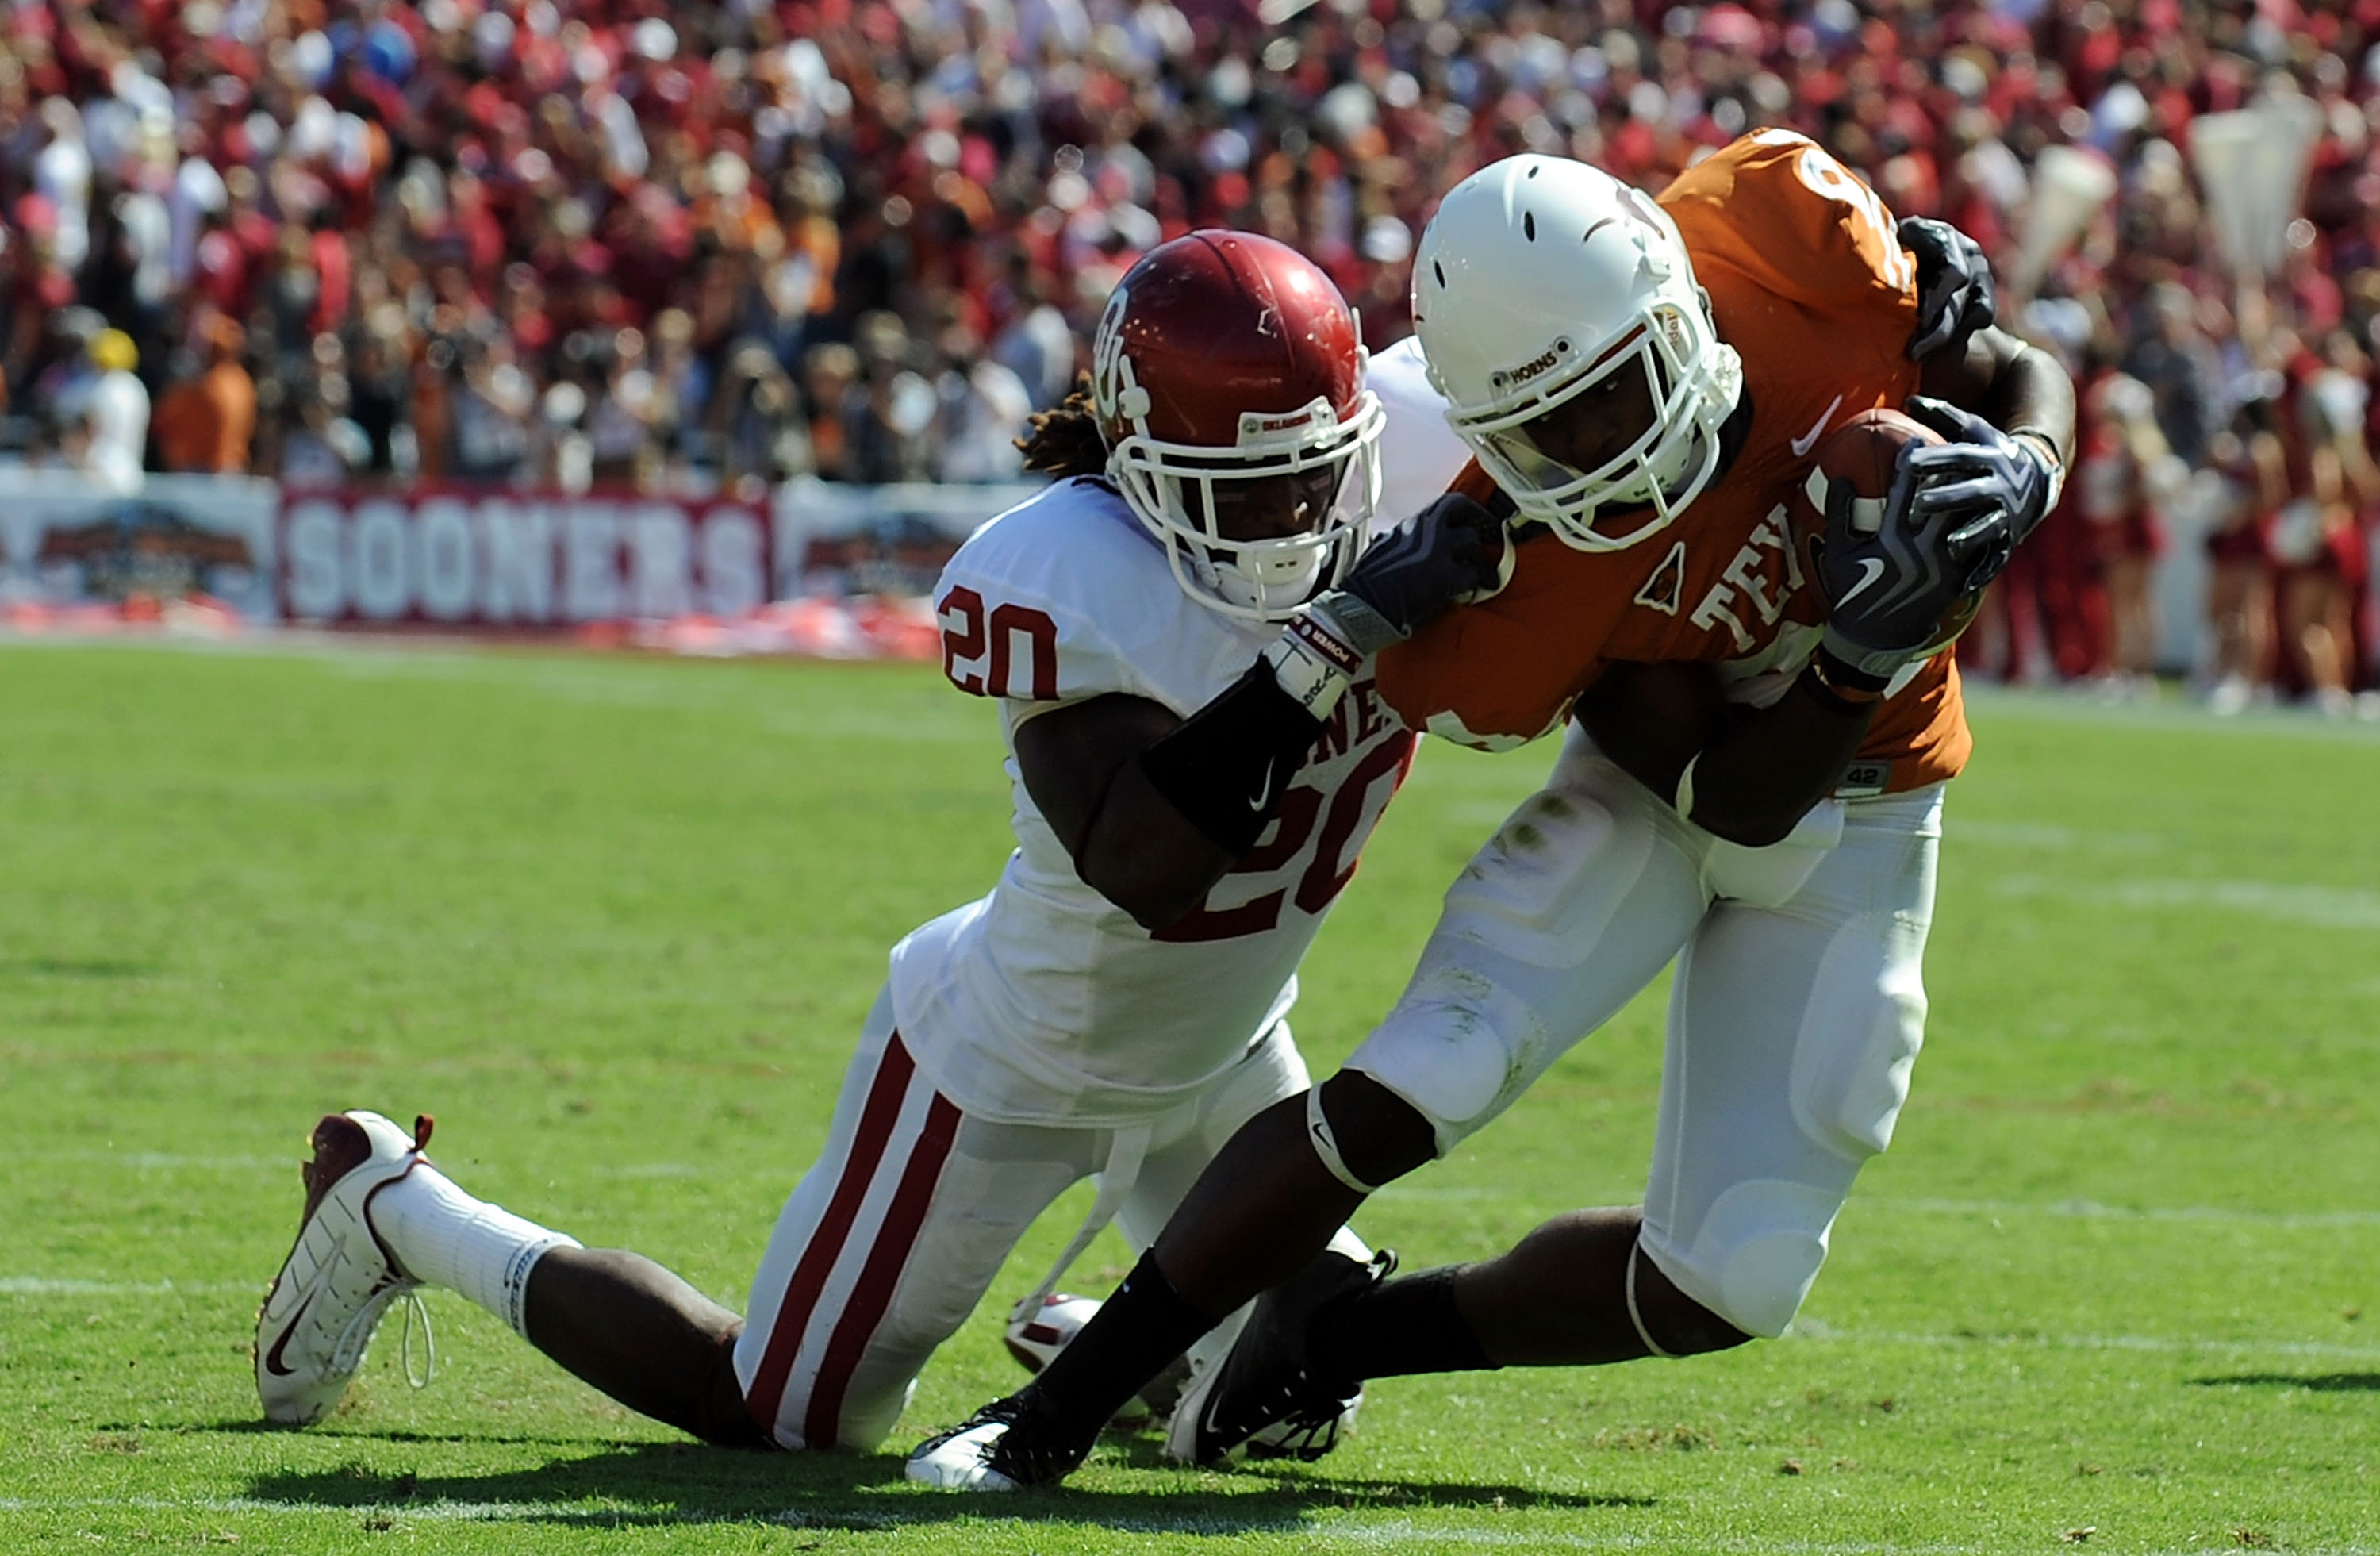 DALLAS - OCTOBER 17:  Wide receiver Marquise Goodwin #84 of the Texas Longhorns runs for a touchdown against Quinton Carter #20 of the Oklahoma Sooners at Cotton Bowl on October 17, 2009 in Dallas, Texas.  (Photo by Ronald Martinez/Getty Images)